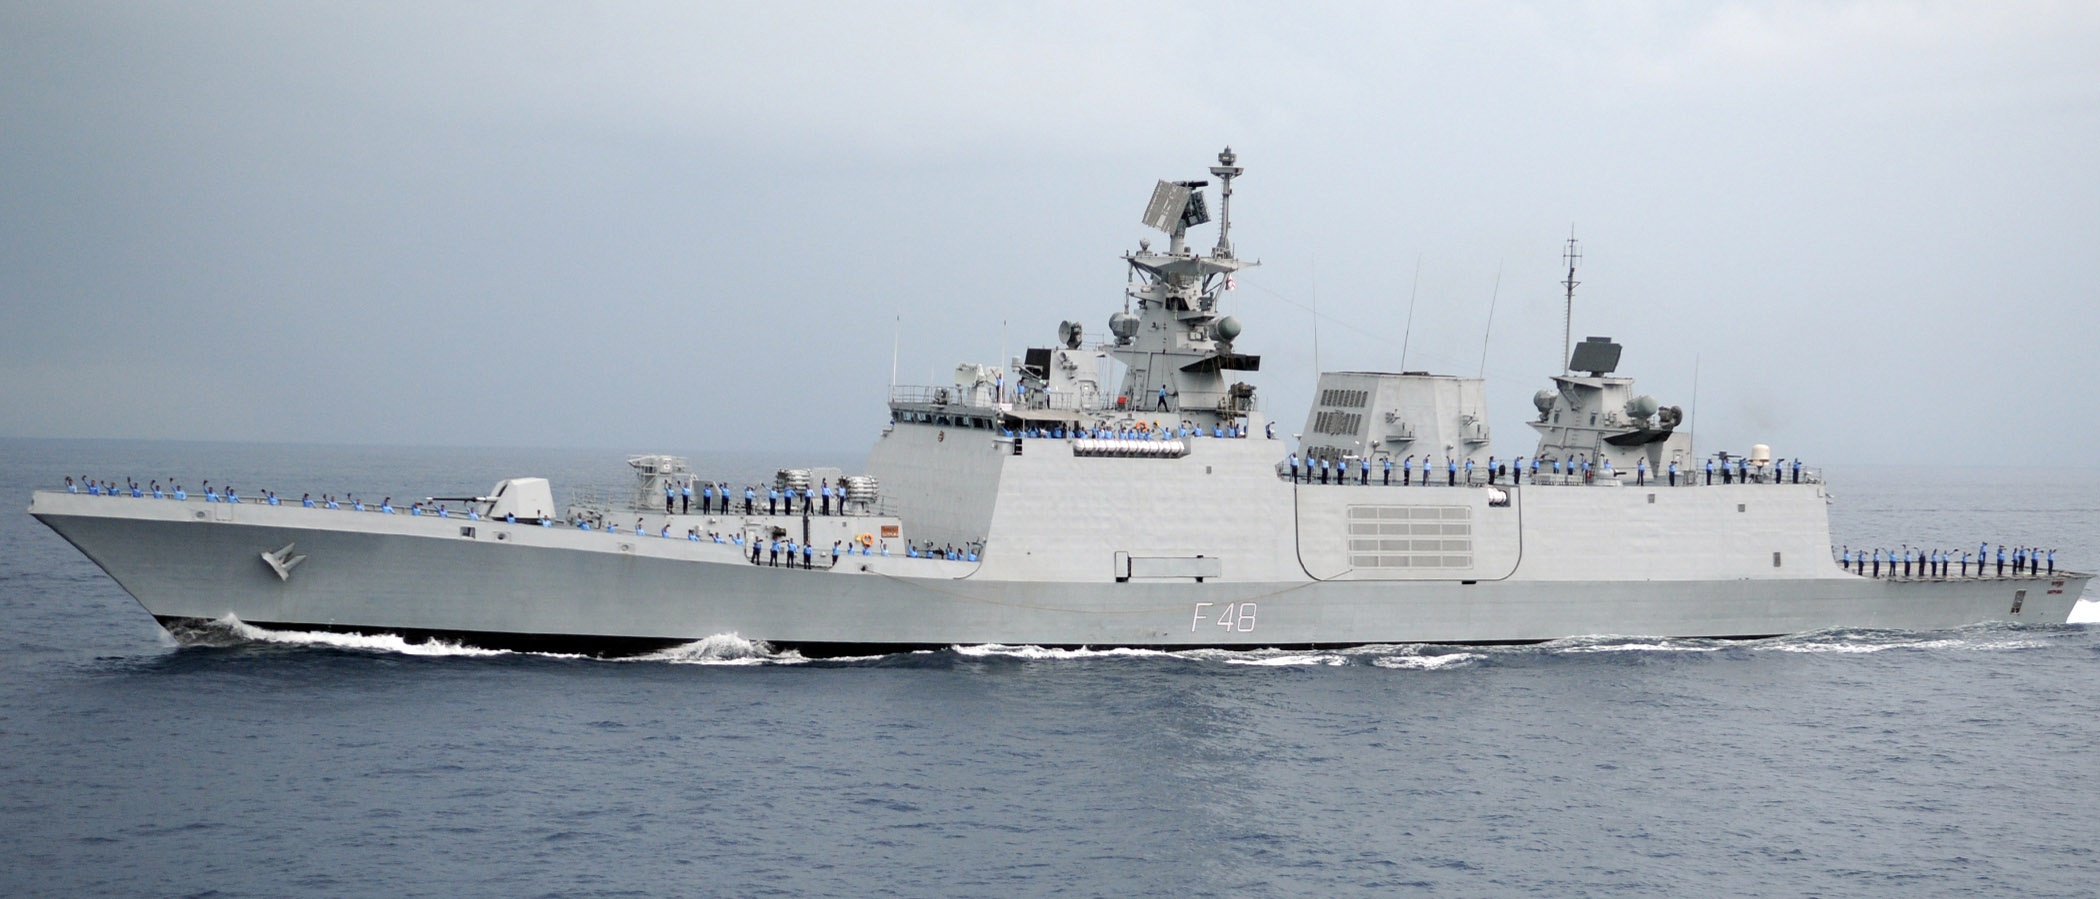 The Indian Navy had sent its stealth frigate INS Shivalik